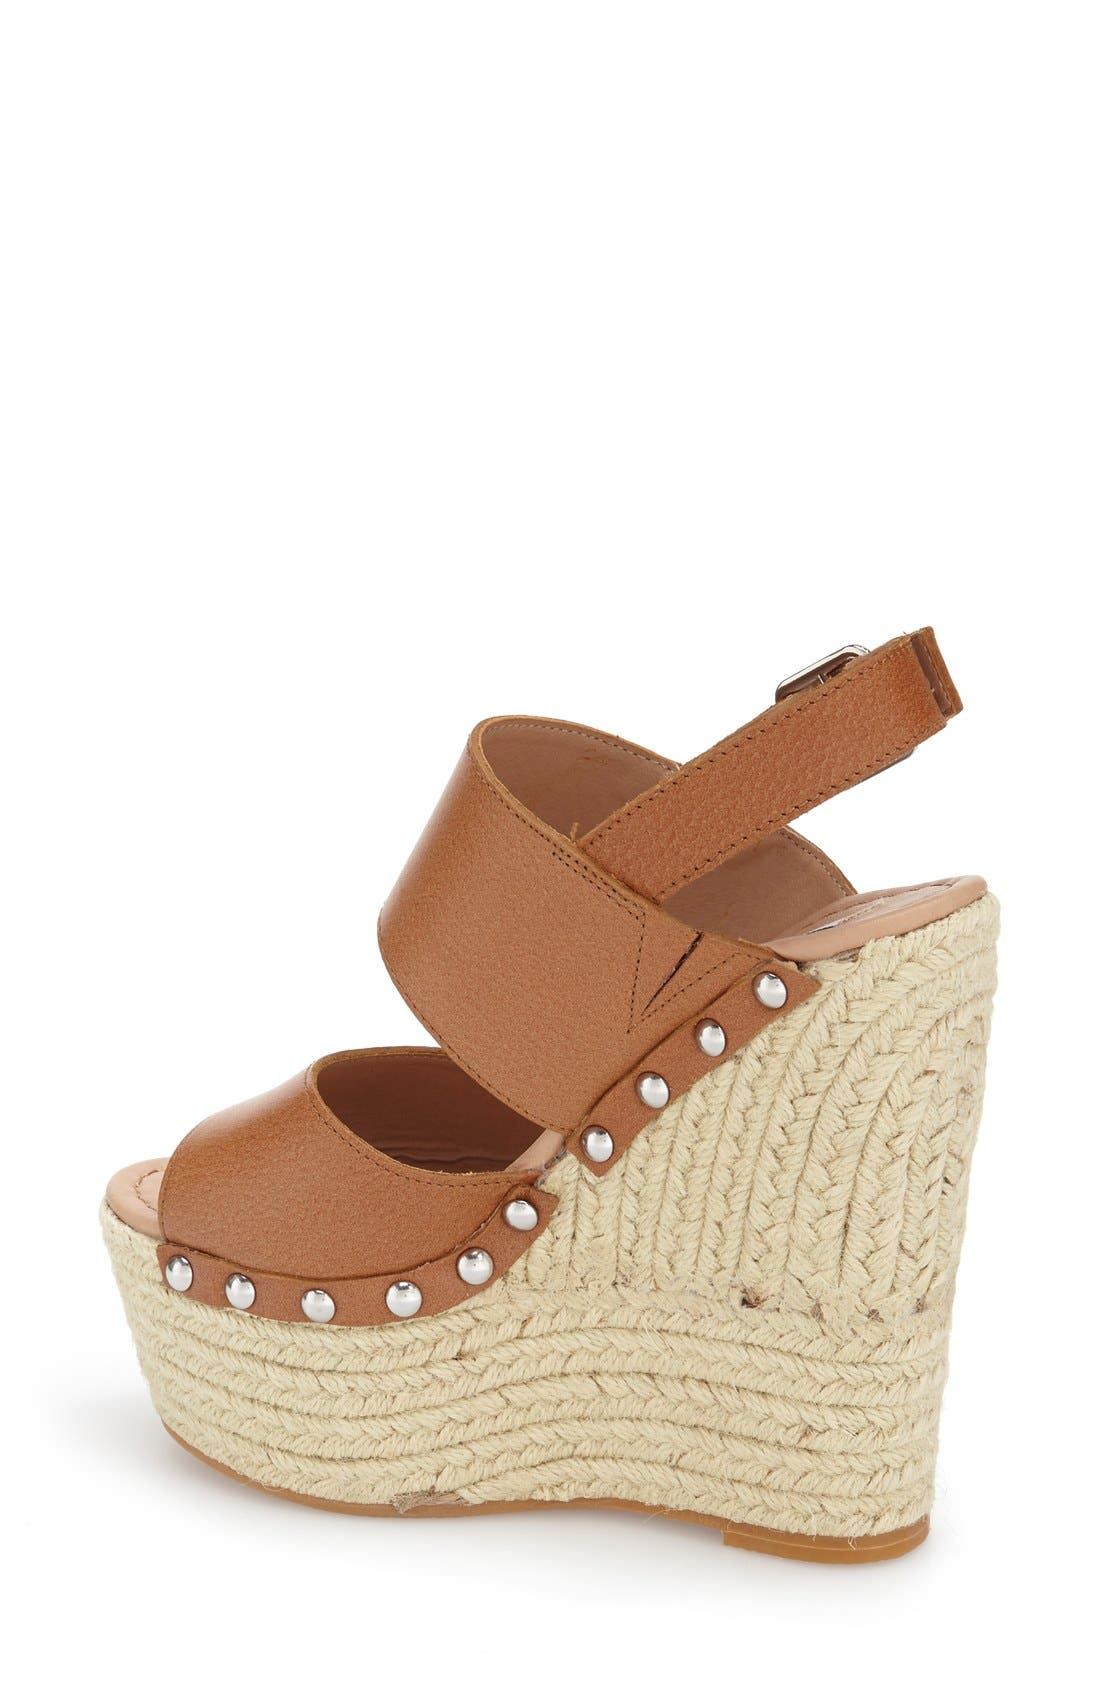 Alternate Image 2  - Steve Madden 'Jummbo' Espadrille Wedge Sandal (Women)